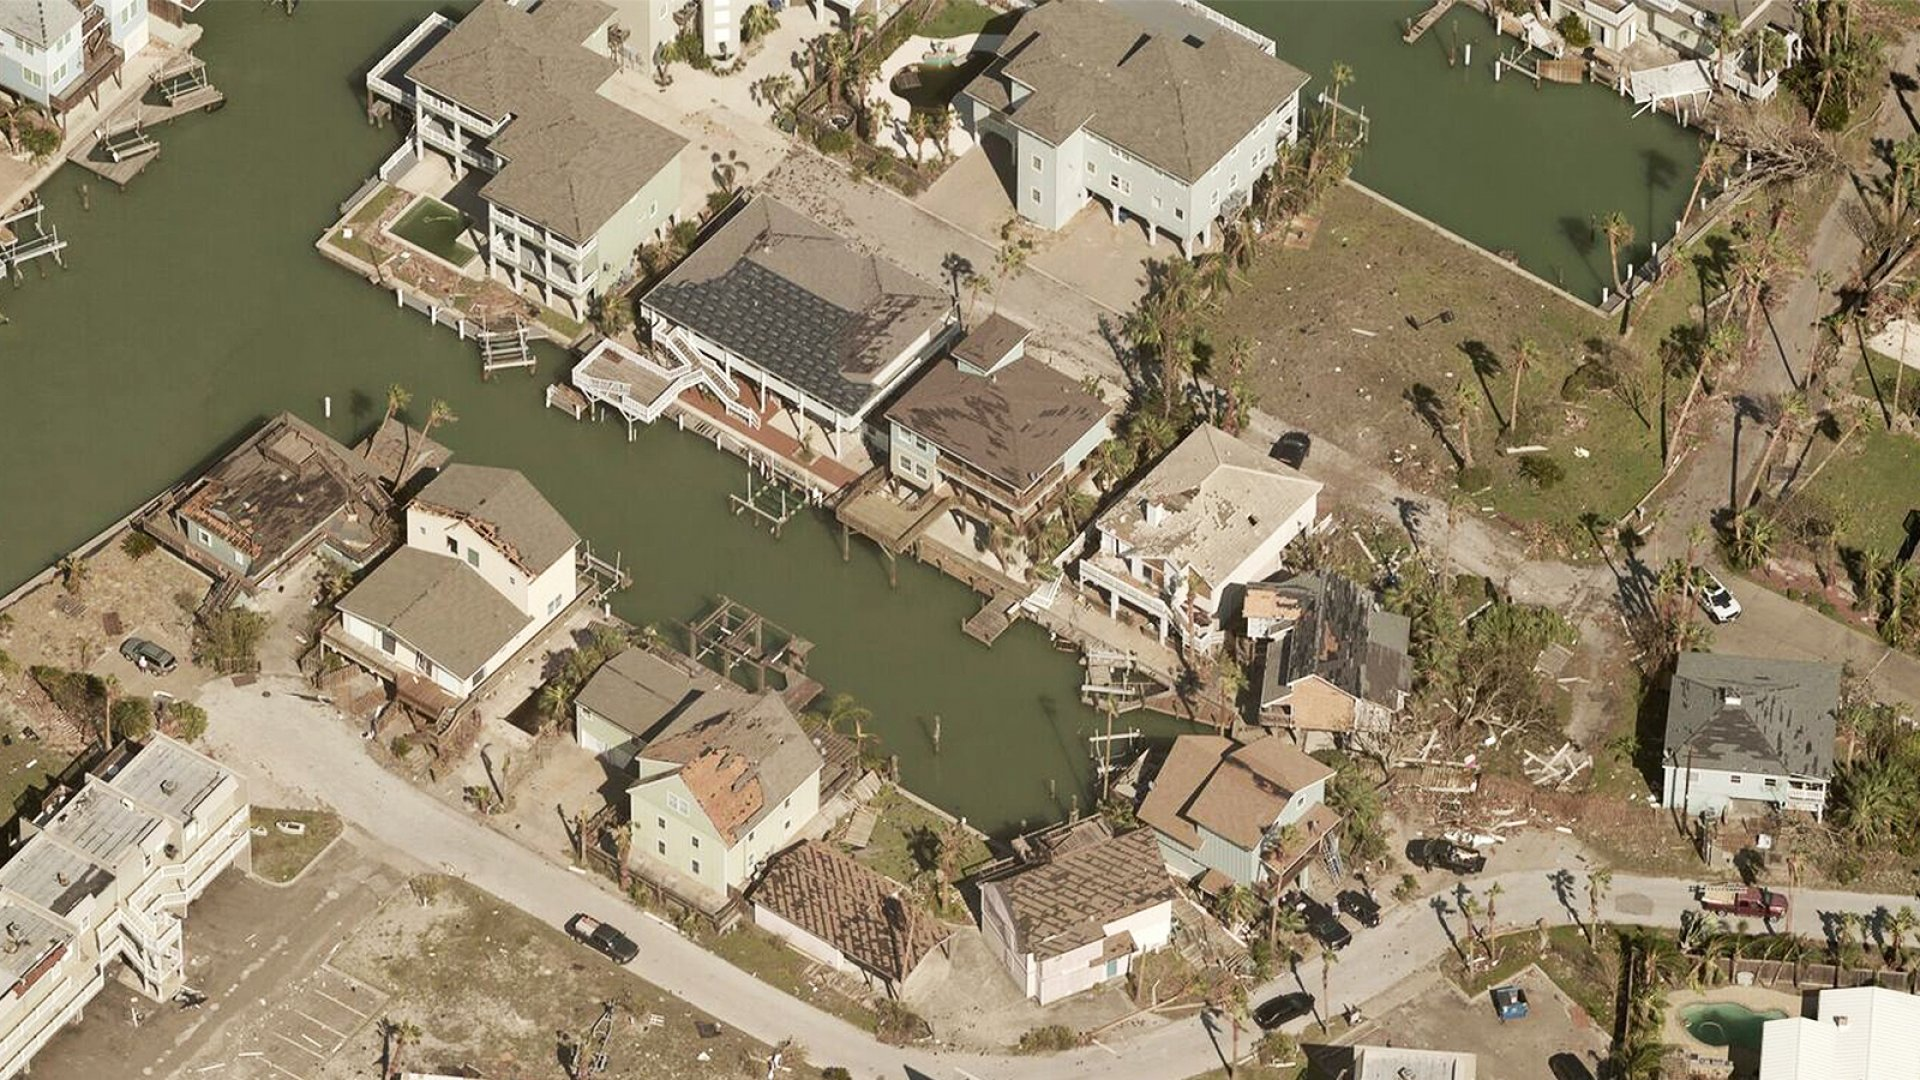 Drone imagery captures the aftermath of Hurricane Harvey.